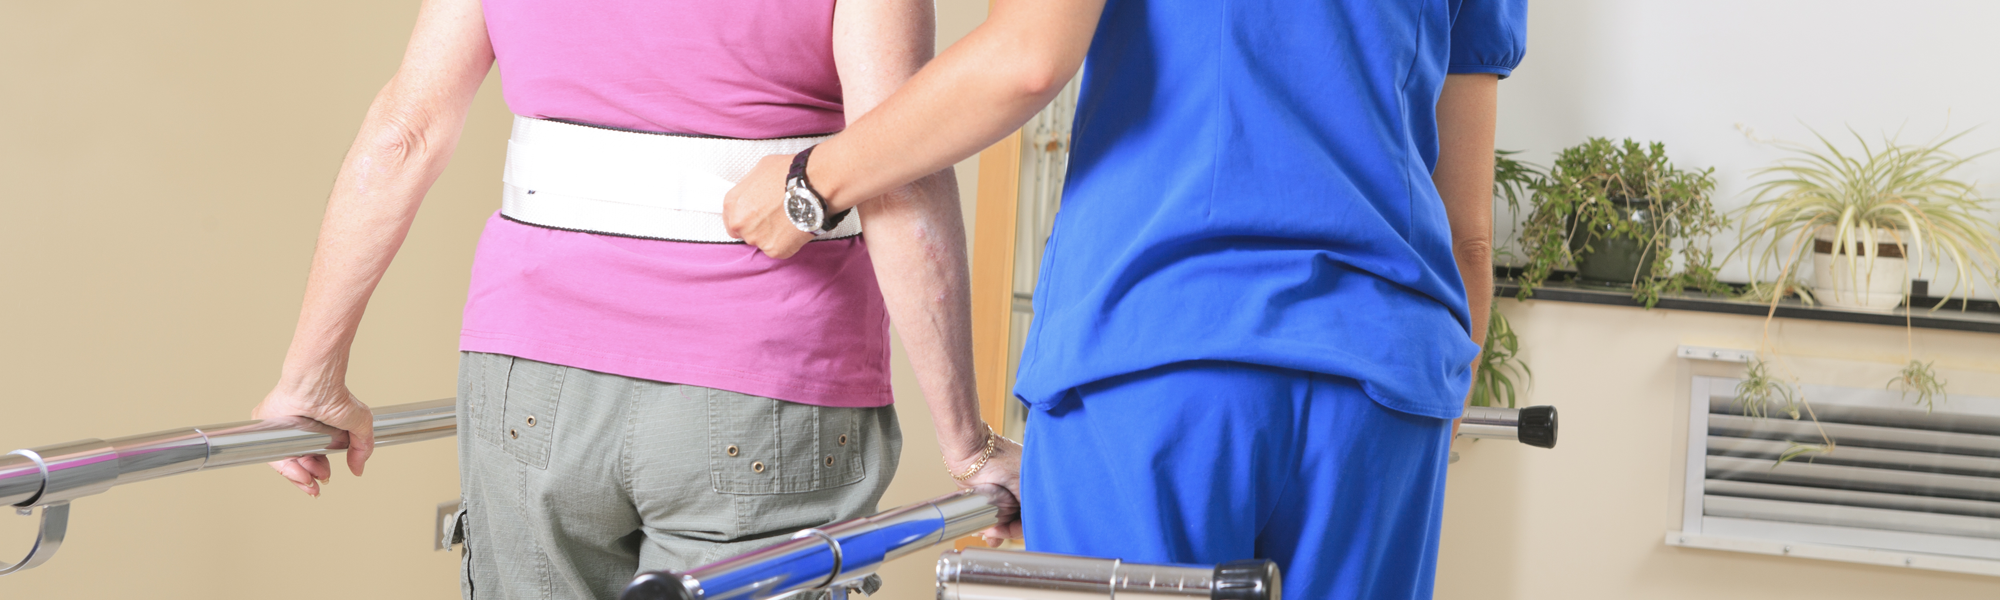 Physical therapist assisting patient with balance therapy